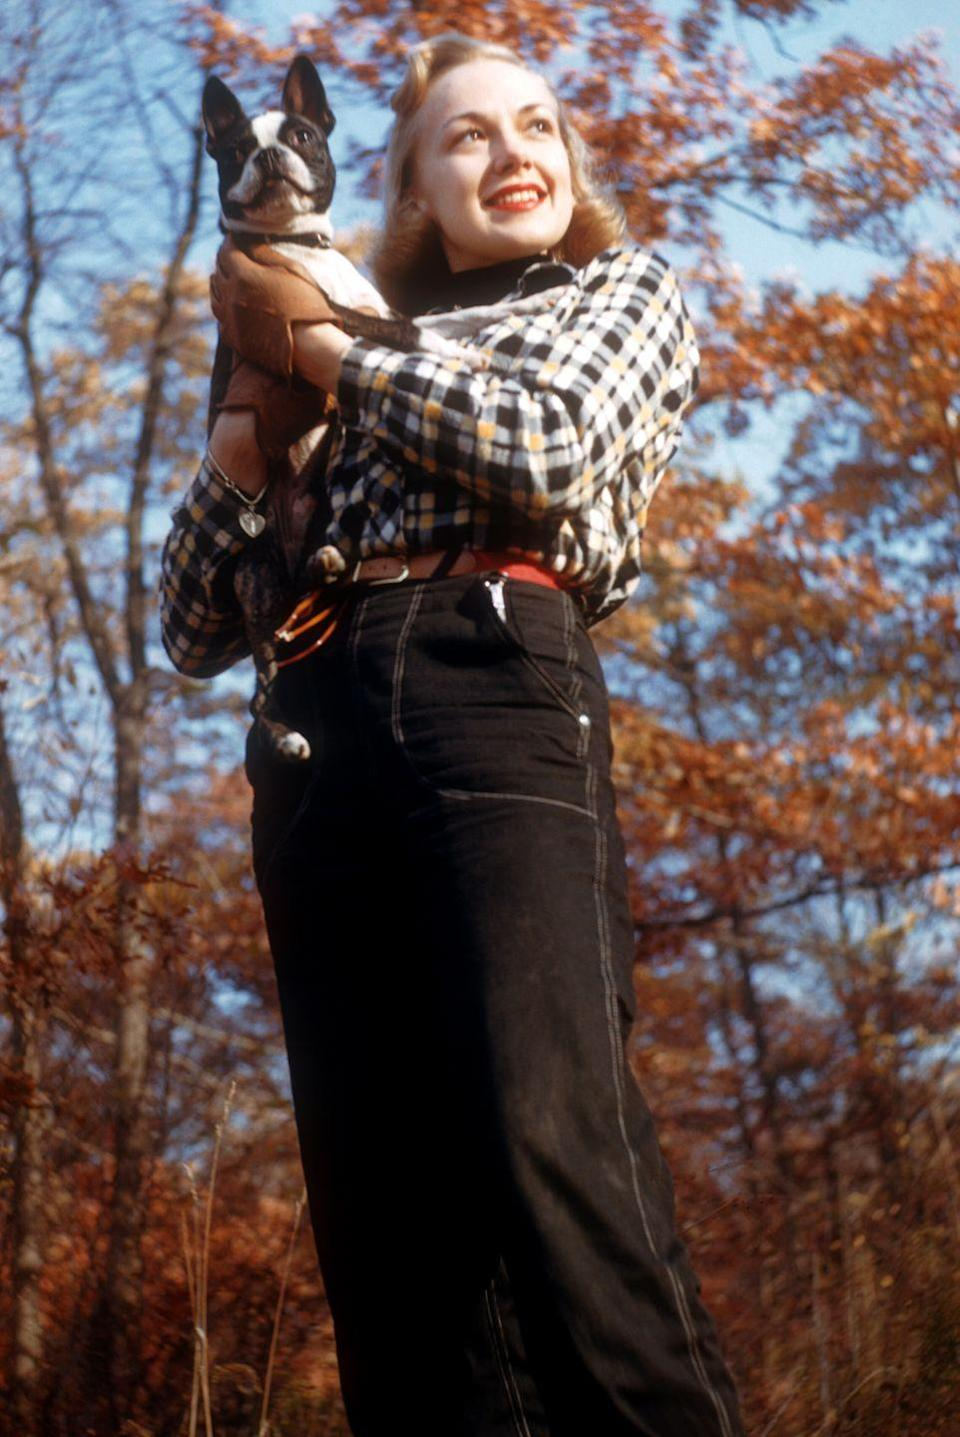 <p>Actress and singer Edie Adams opted for high-waisted, black denim with a checkered top during her October 1952 photo shoot alongside her pet Boston Terrier.<br></p>